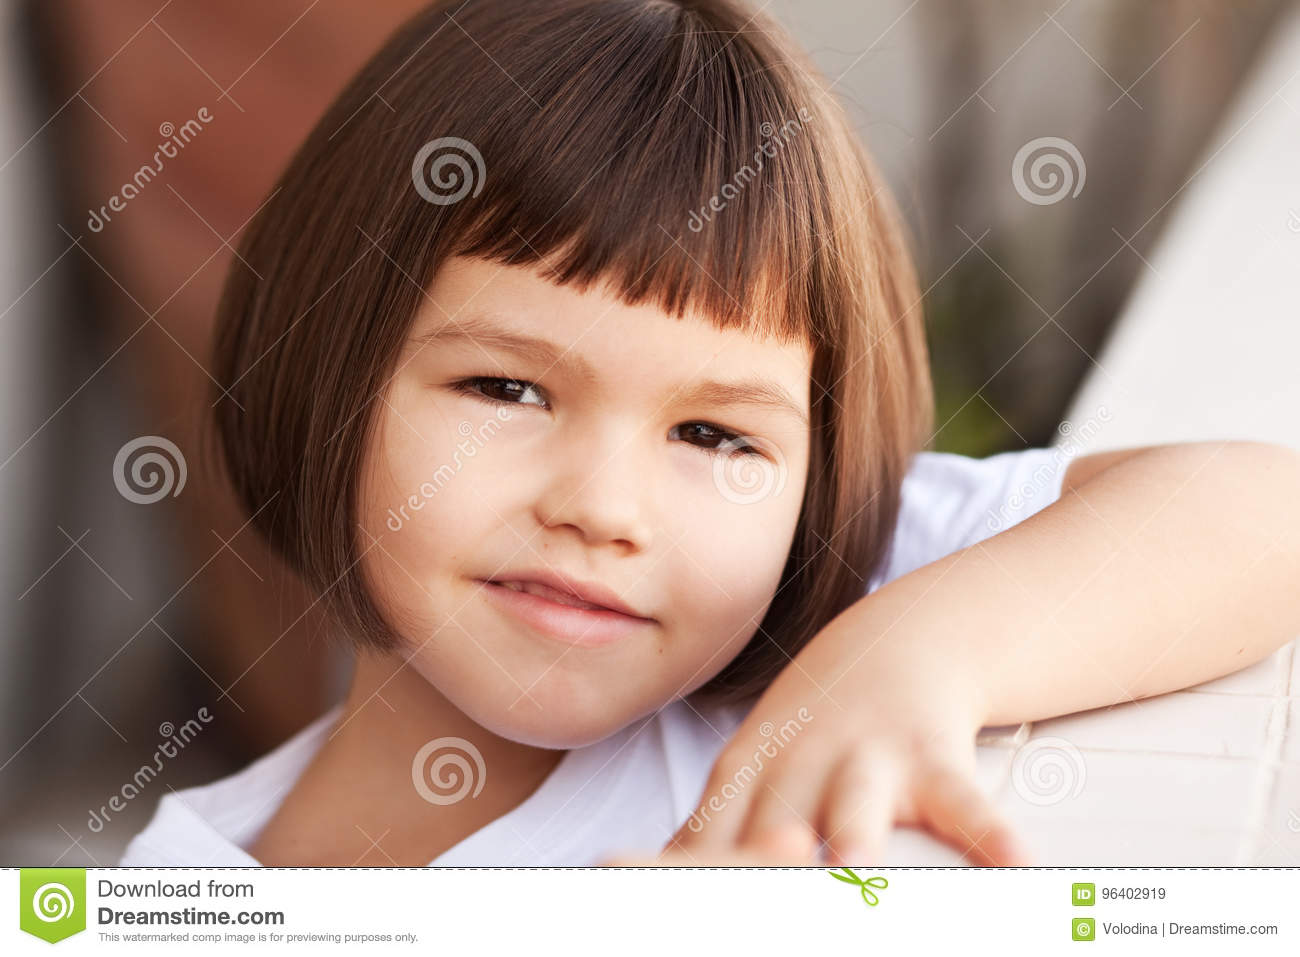 6 723 Bangs Girl Photos Free Royalty Free Stock Photos From Dreamstime